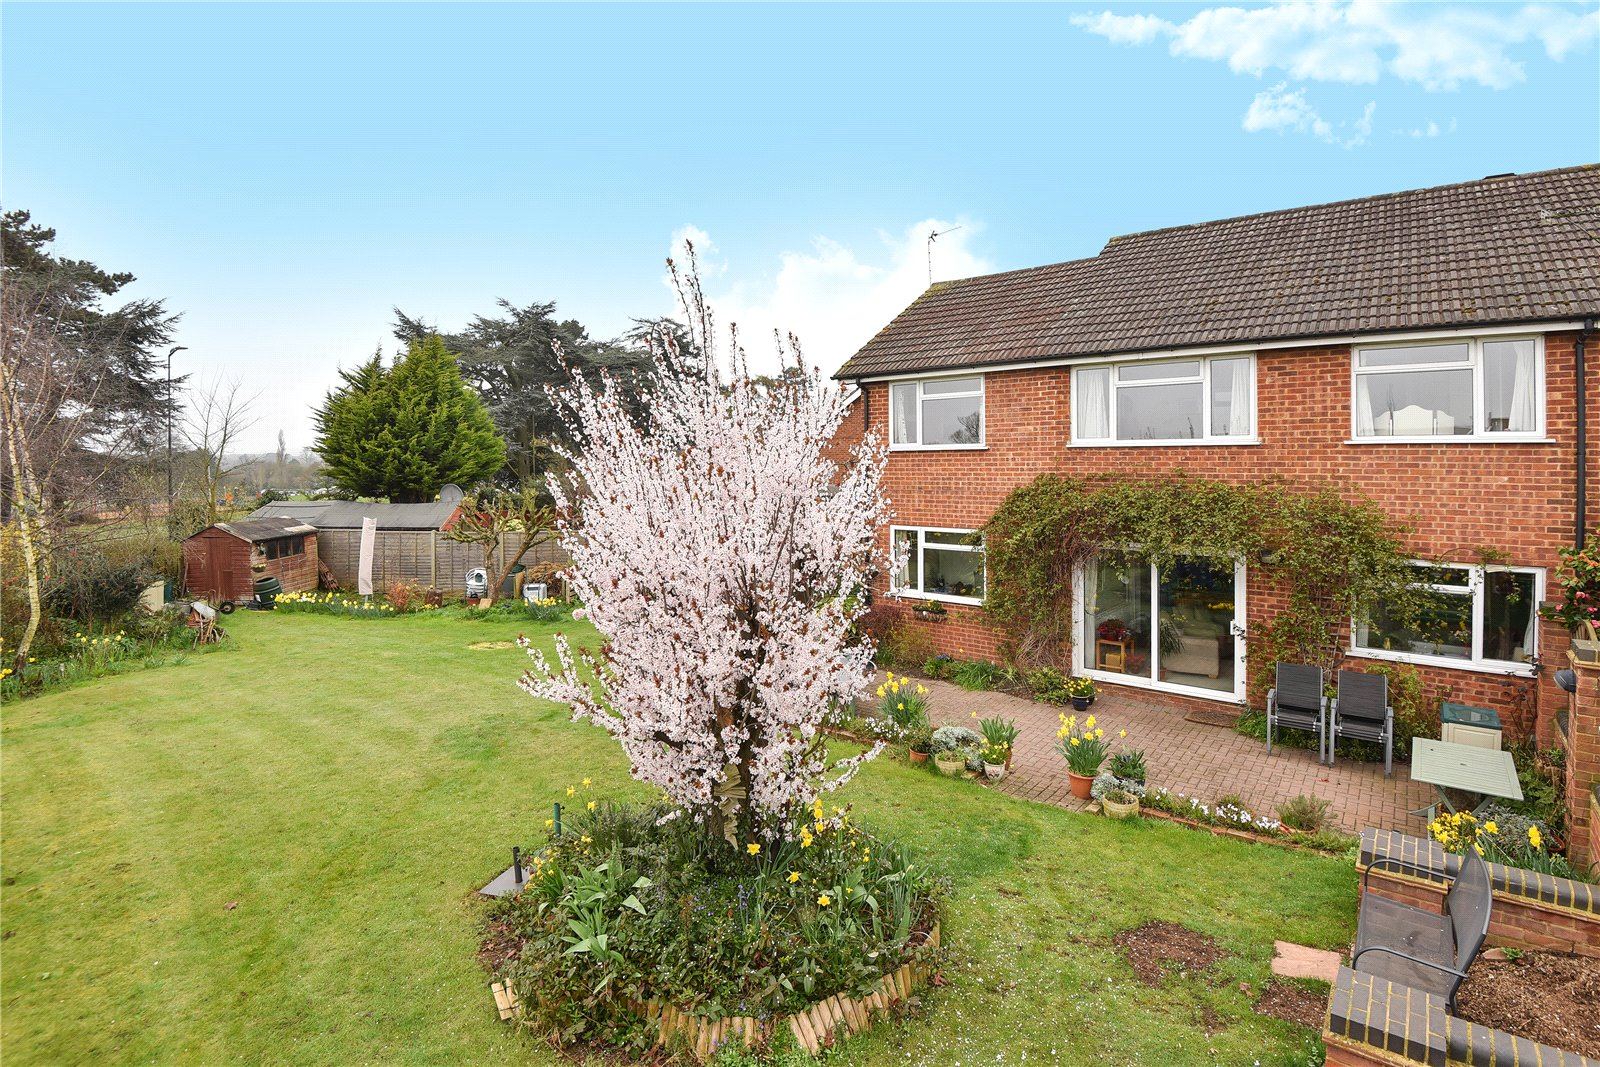 4 Bedrooms End Of Terrace House for sale in Courtfield Drive, Maidenhead, Berkshire, SL6